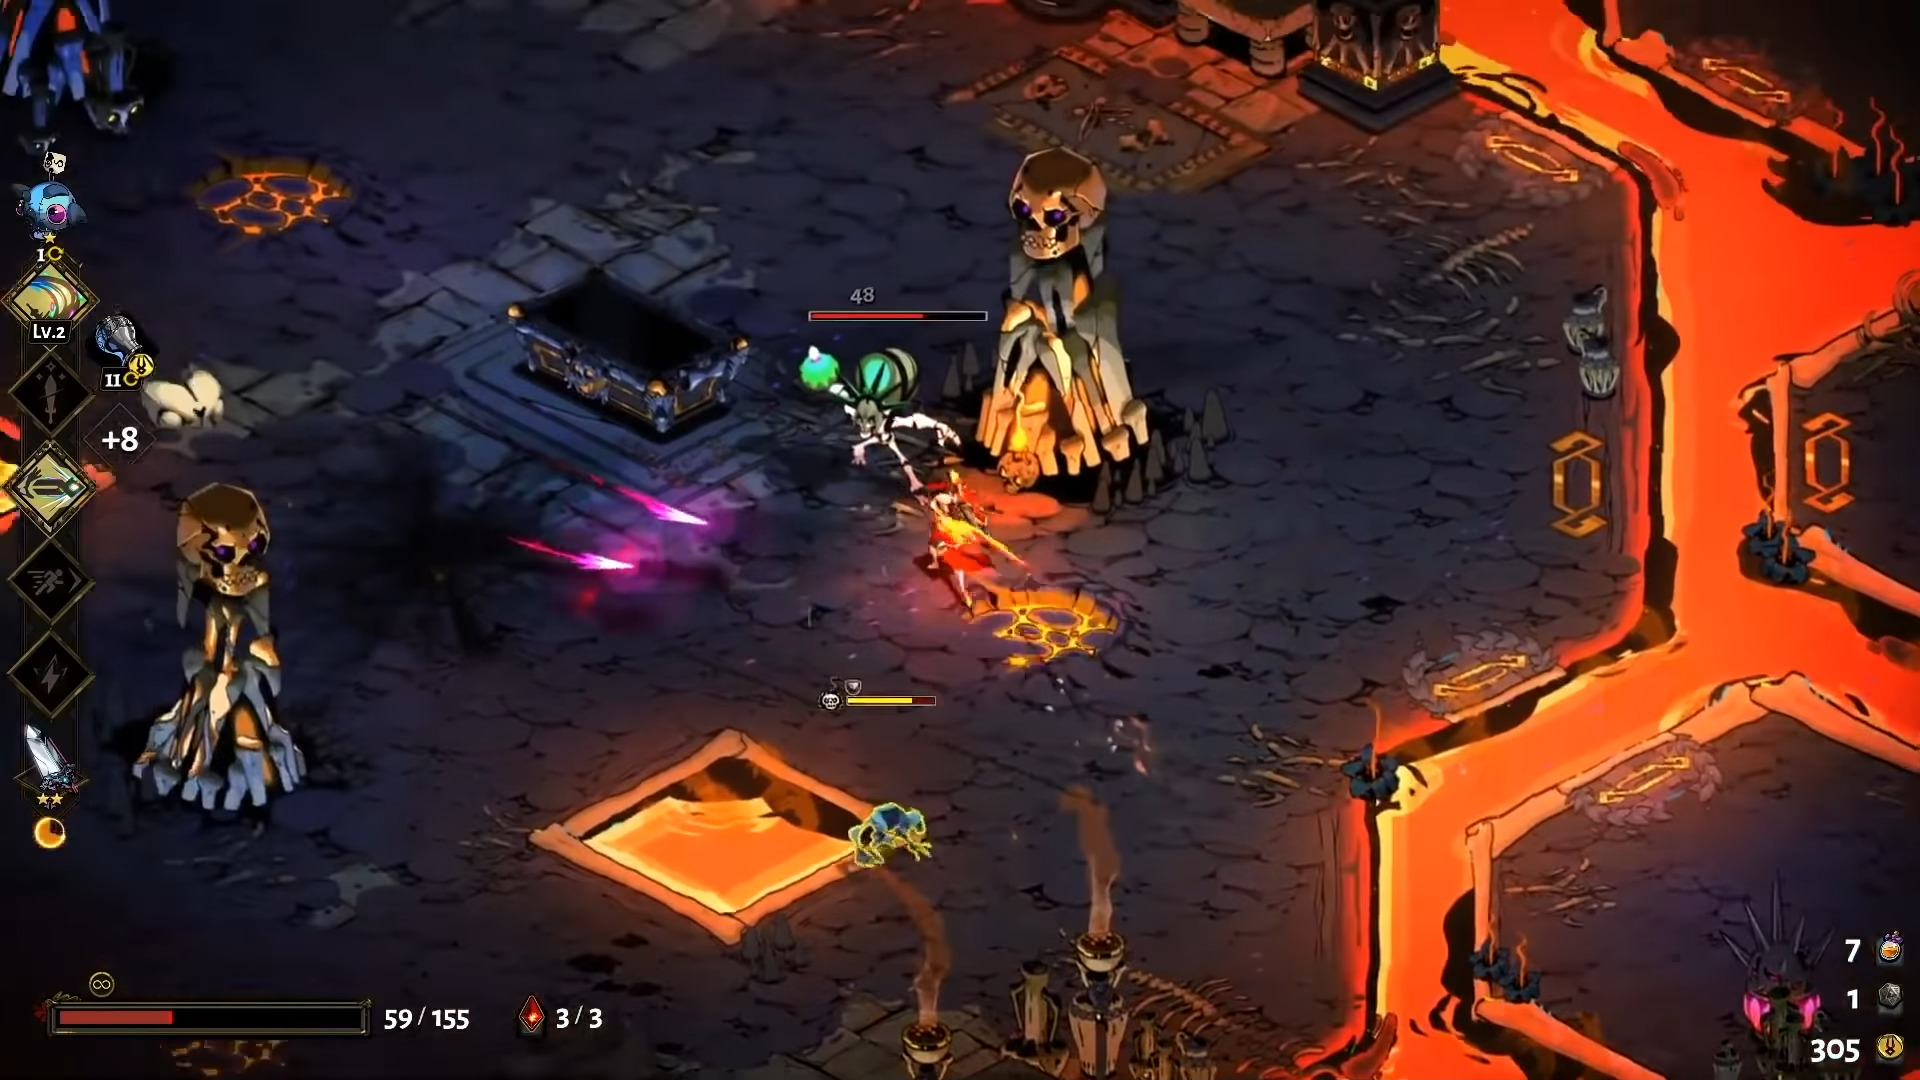 The Action Roguelike Hades Had A Spectacular Year On Steam, According To Recent Figures